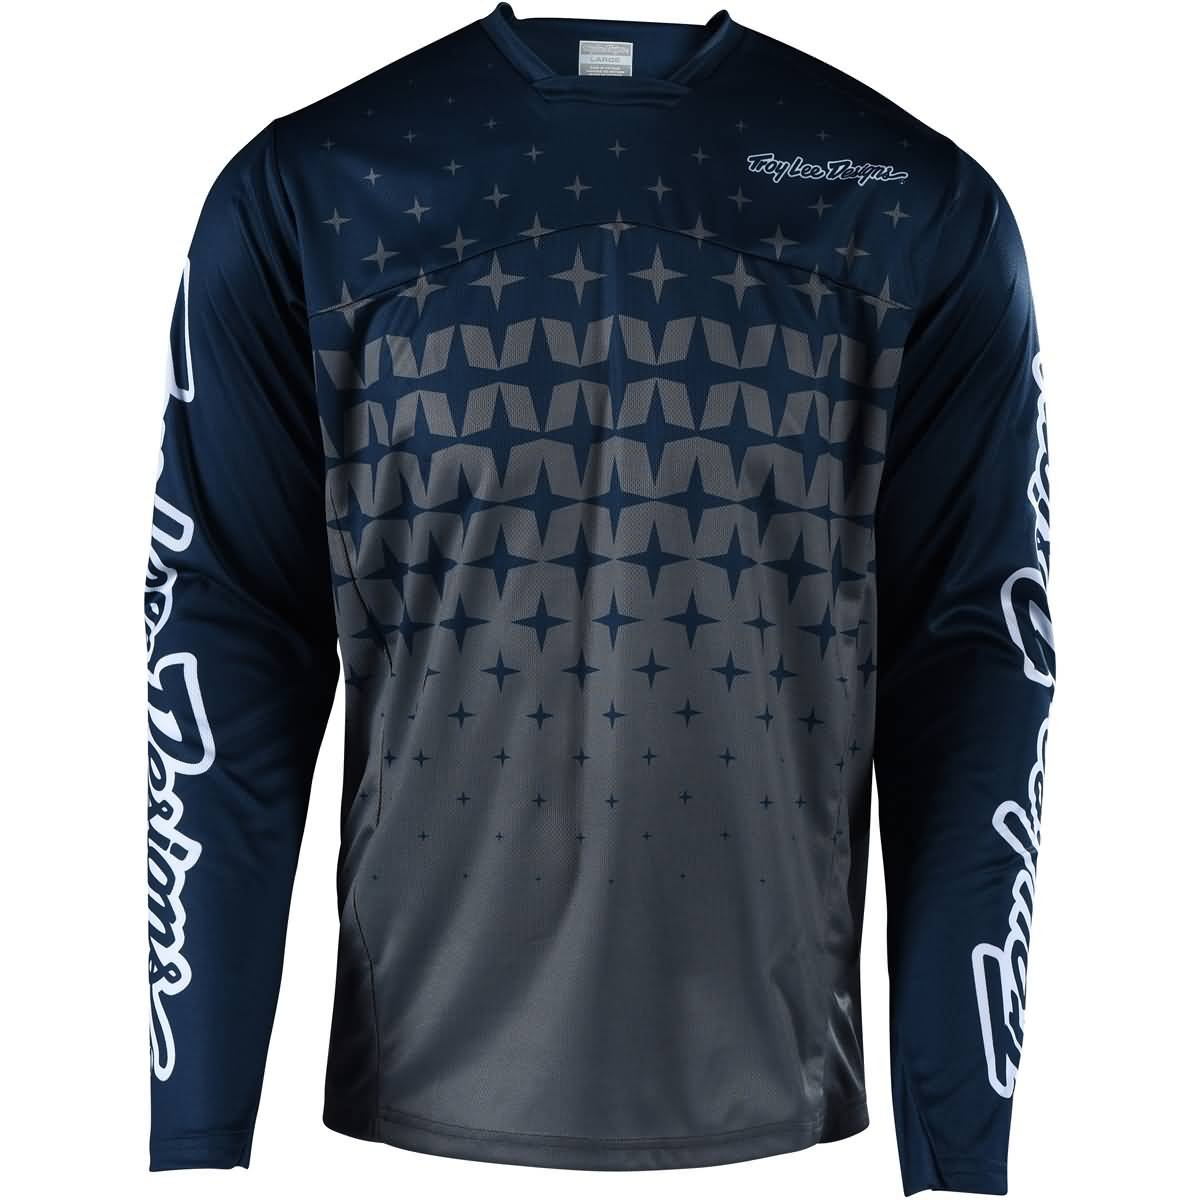 Troy Lee Designs Sprint Jersey - Men's Megaburst Gray/Navy, S